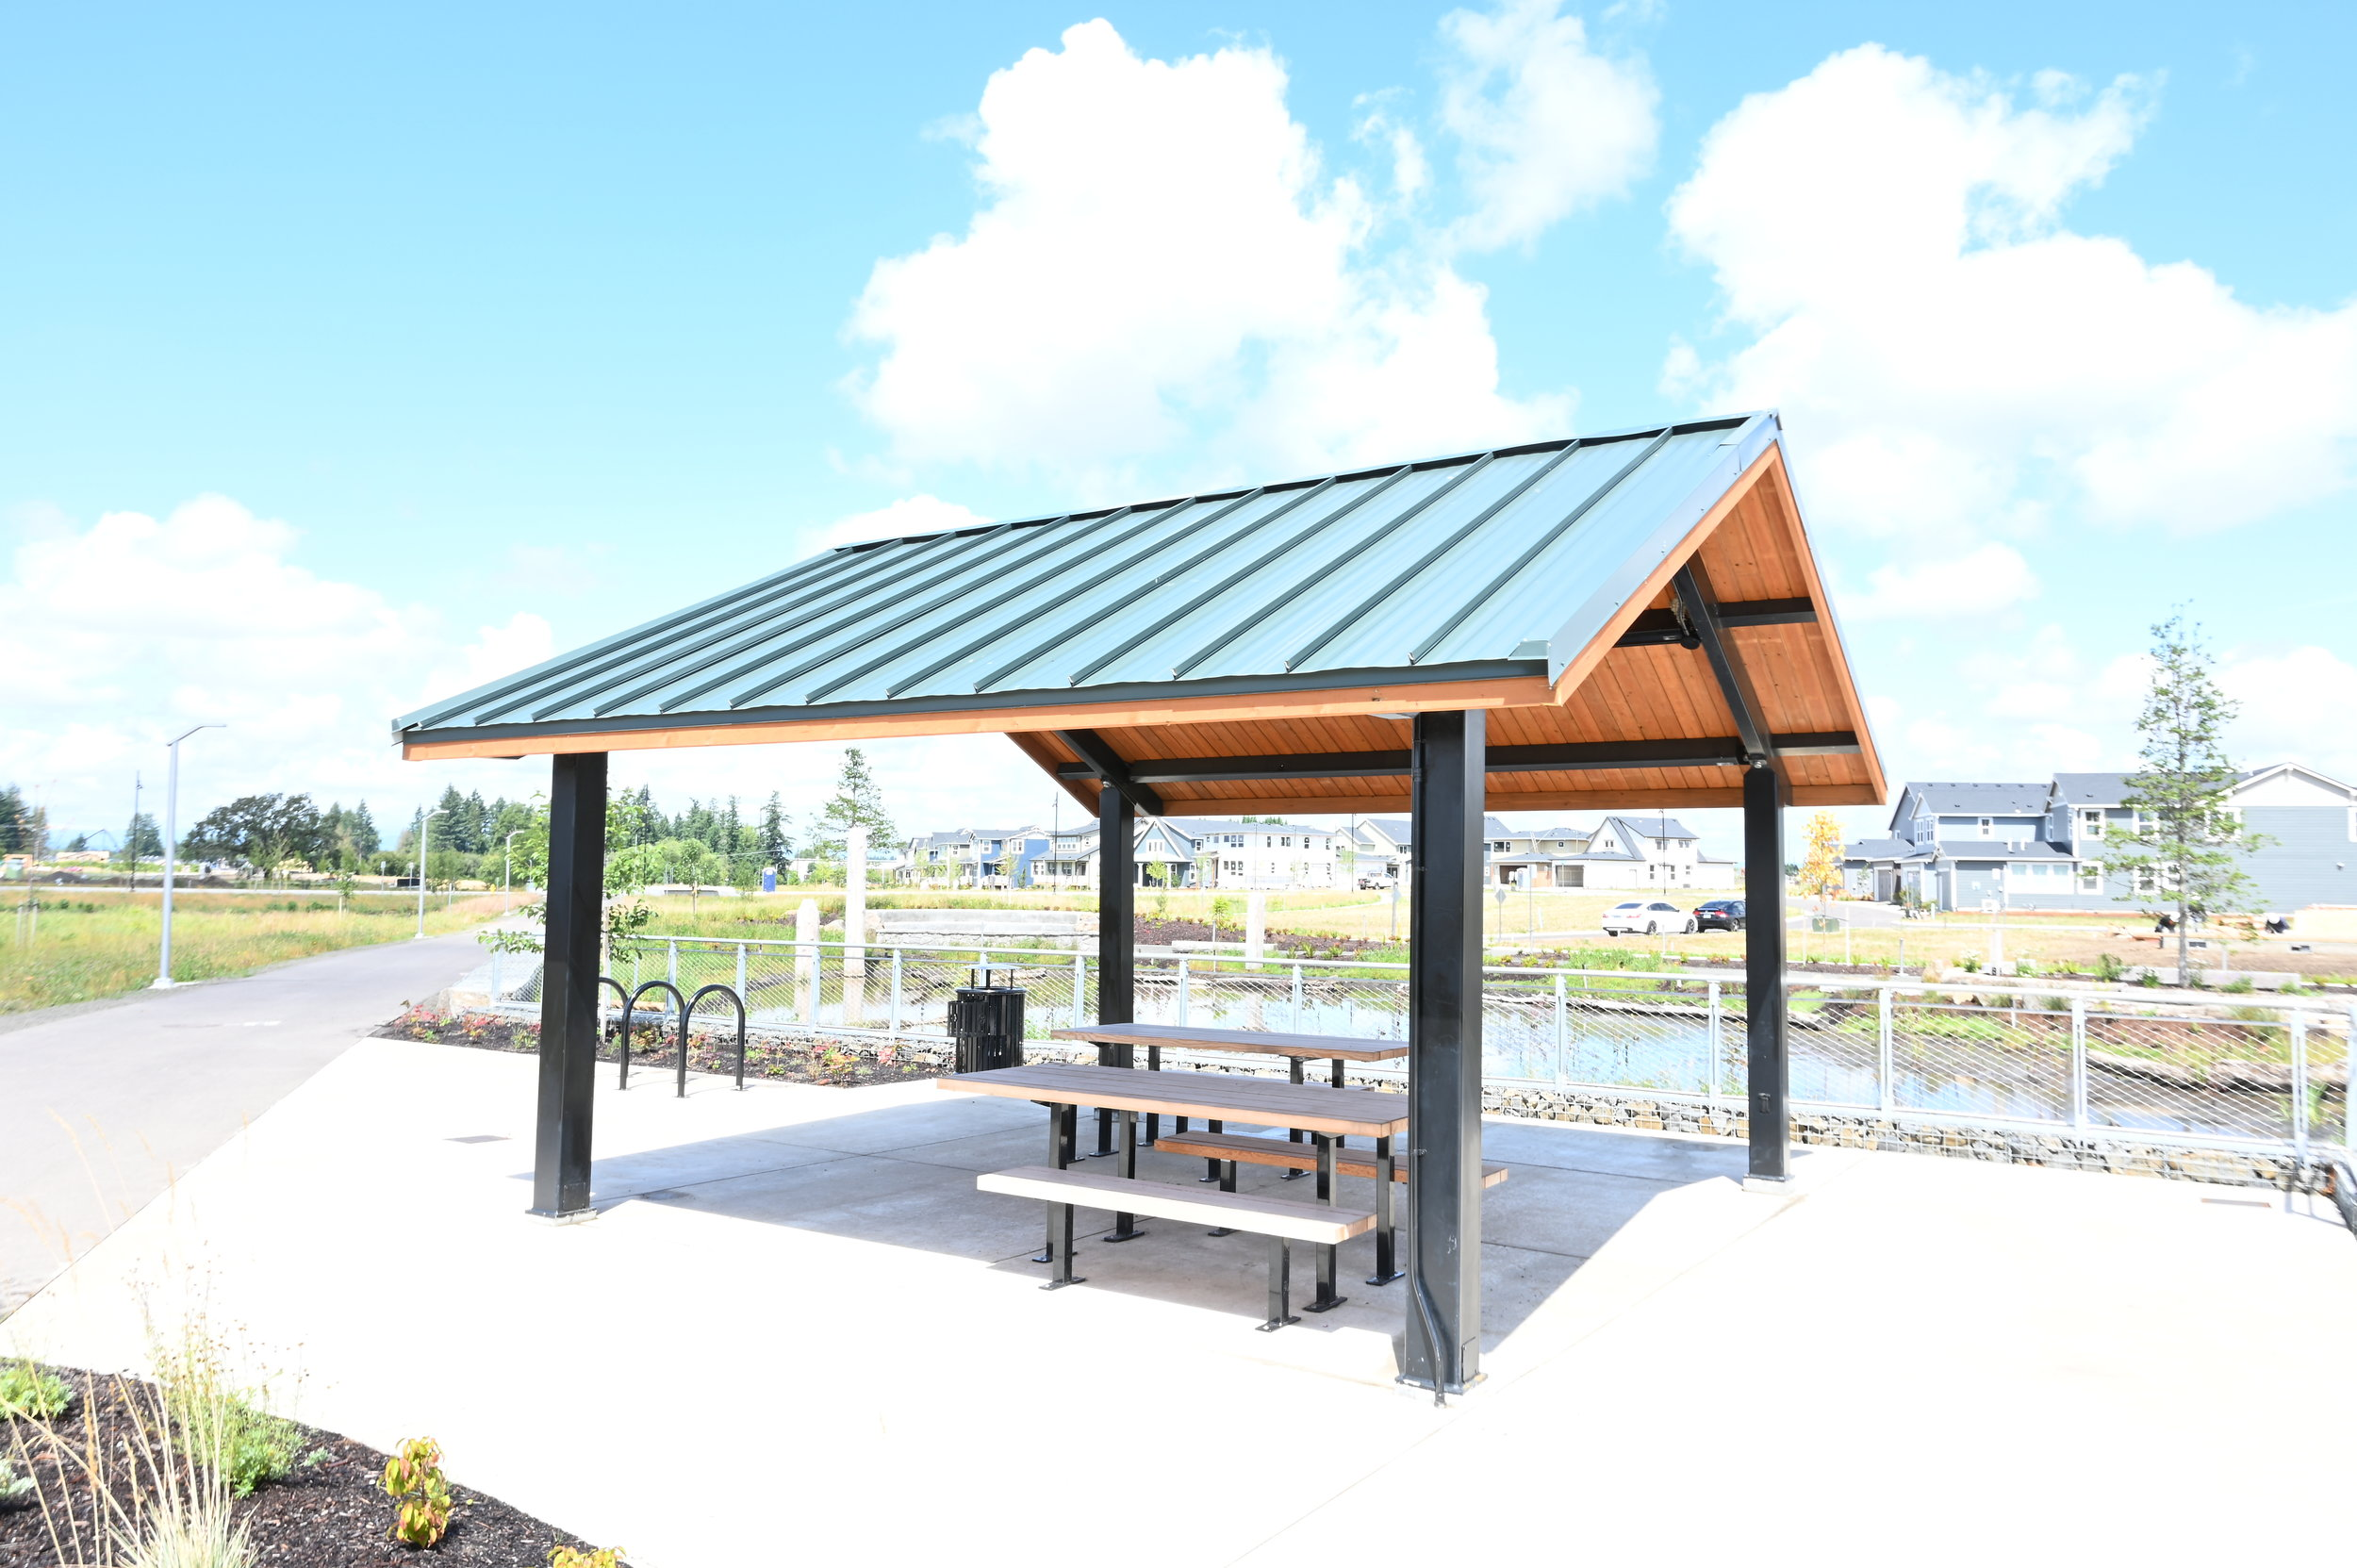 overexposed photo of metal picnic shelter on sunny day